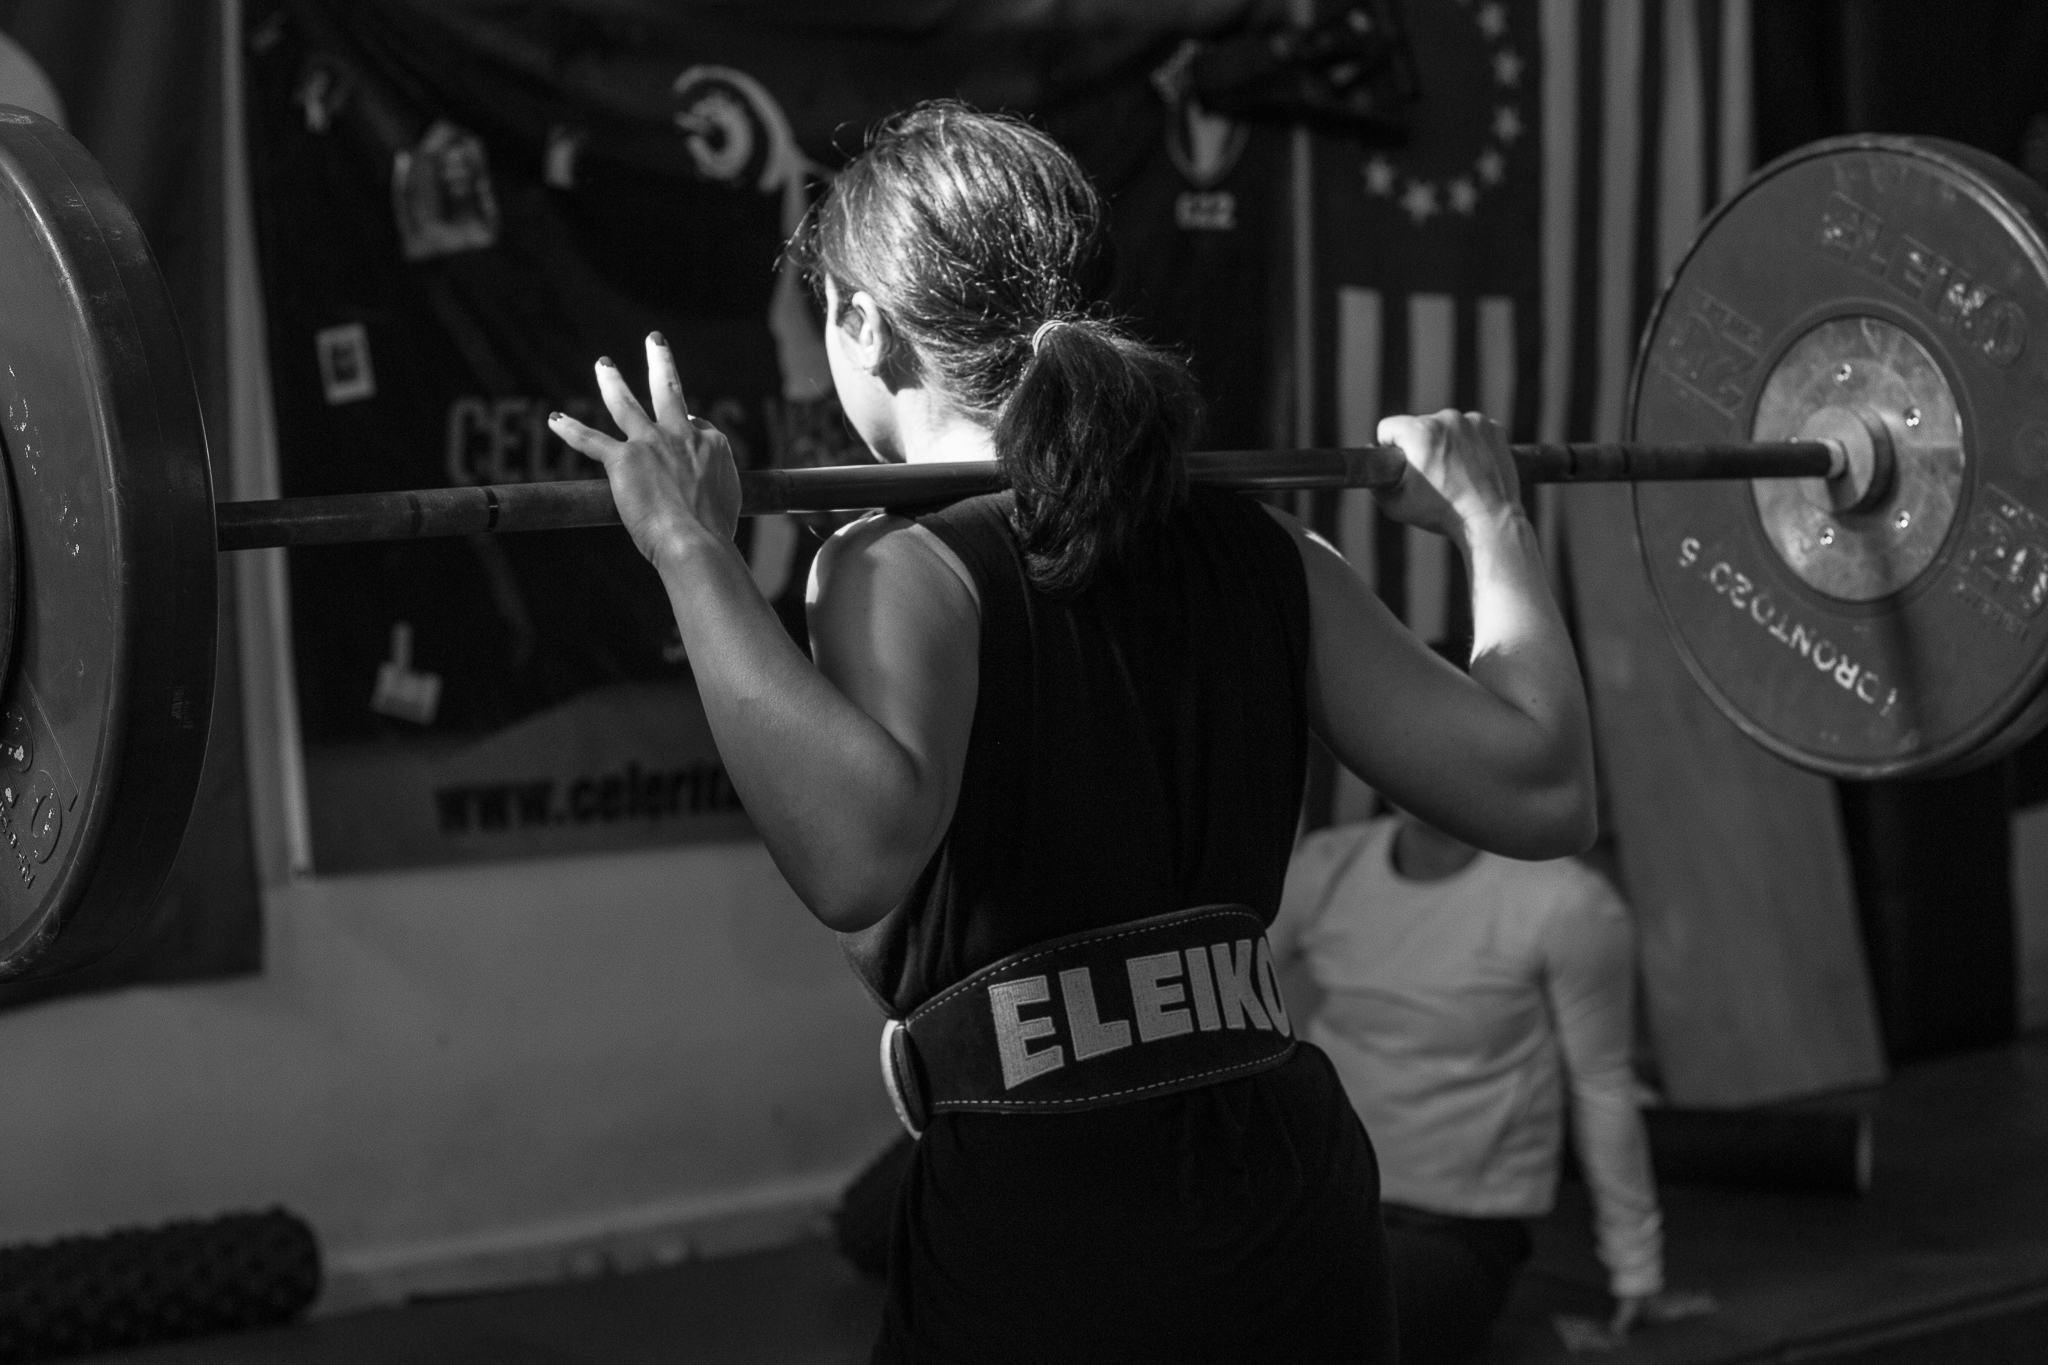 lauren-weightlifters-olympic-weightlifting-featured-everyday-lifters (31 of 31).jpg